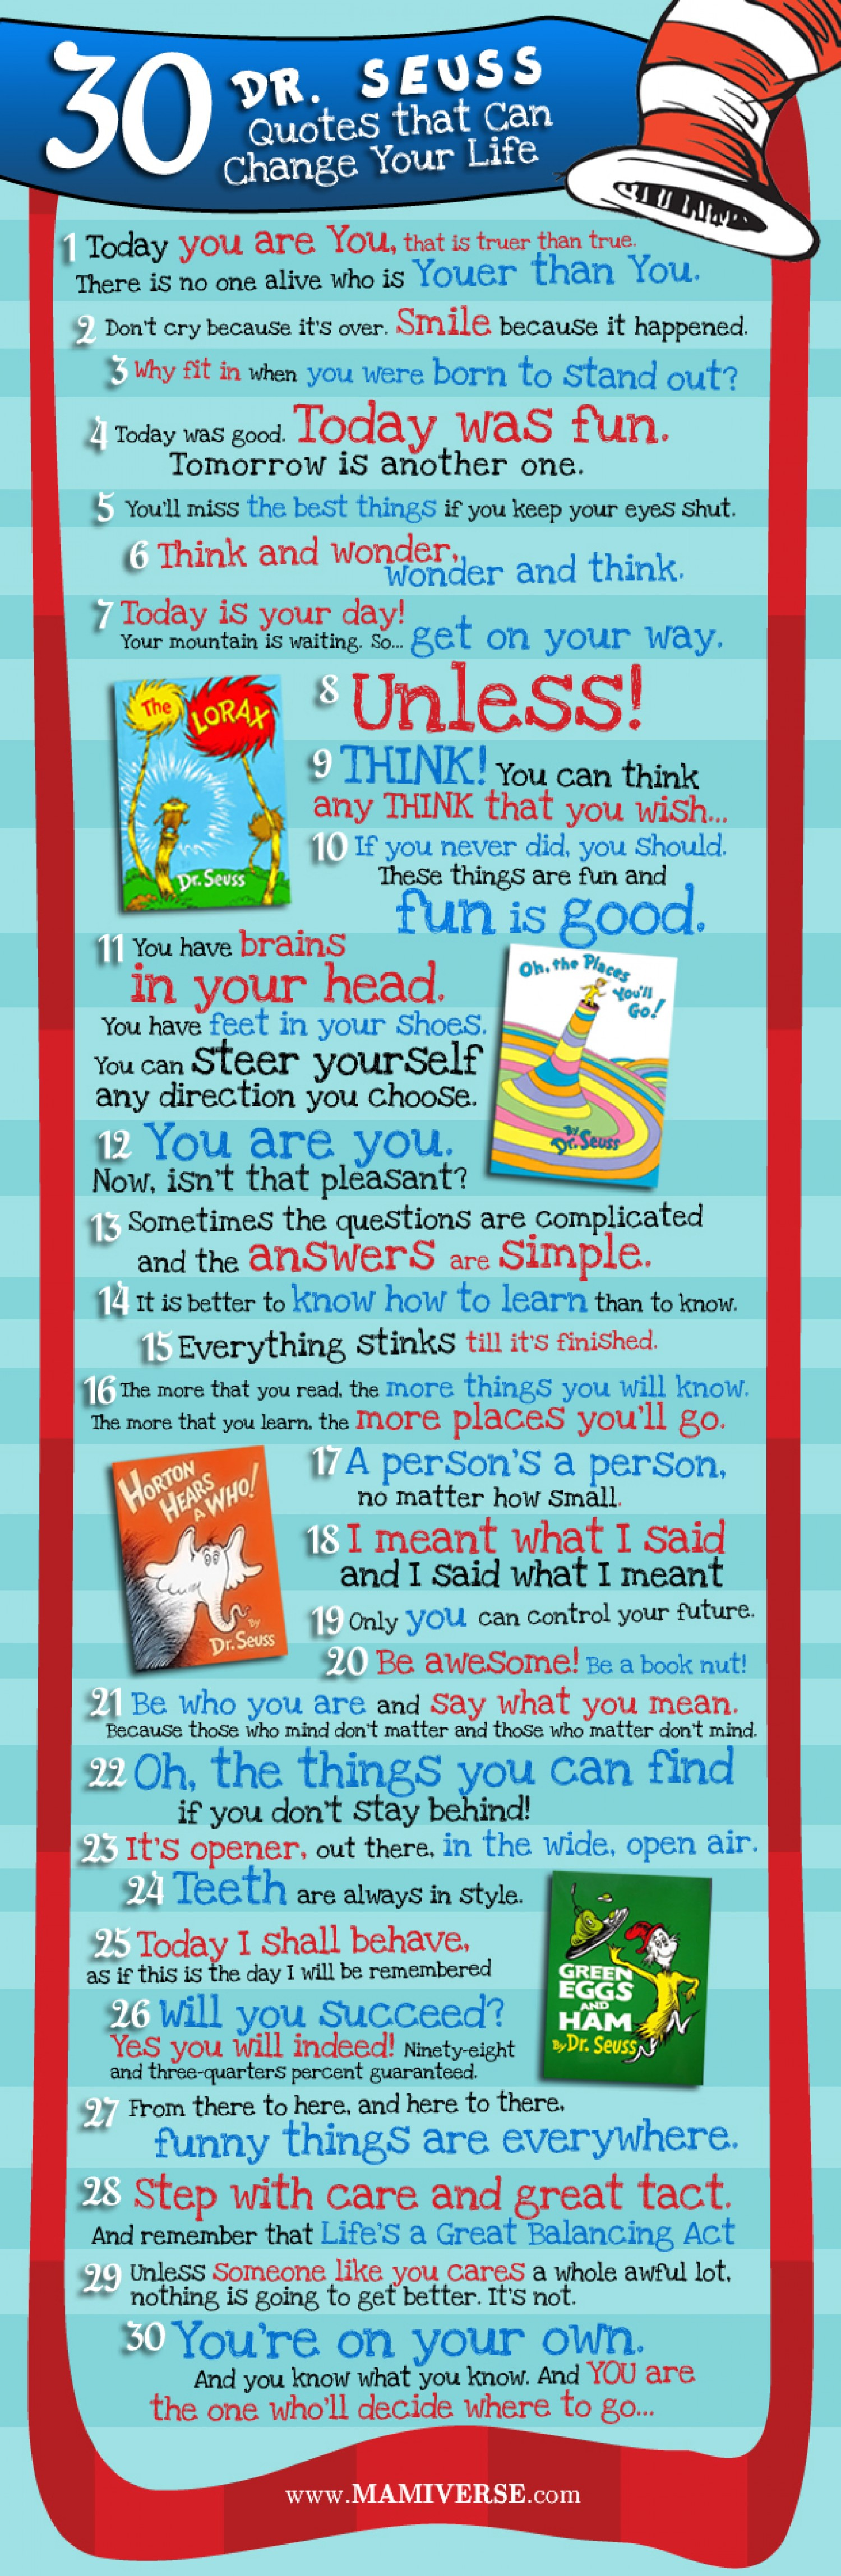 08 dr-seuss-words-of-wisdom_502915288ae8e_w1500